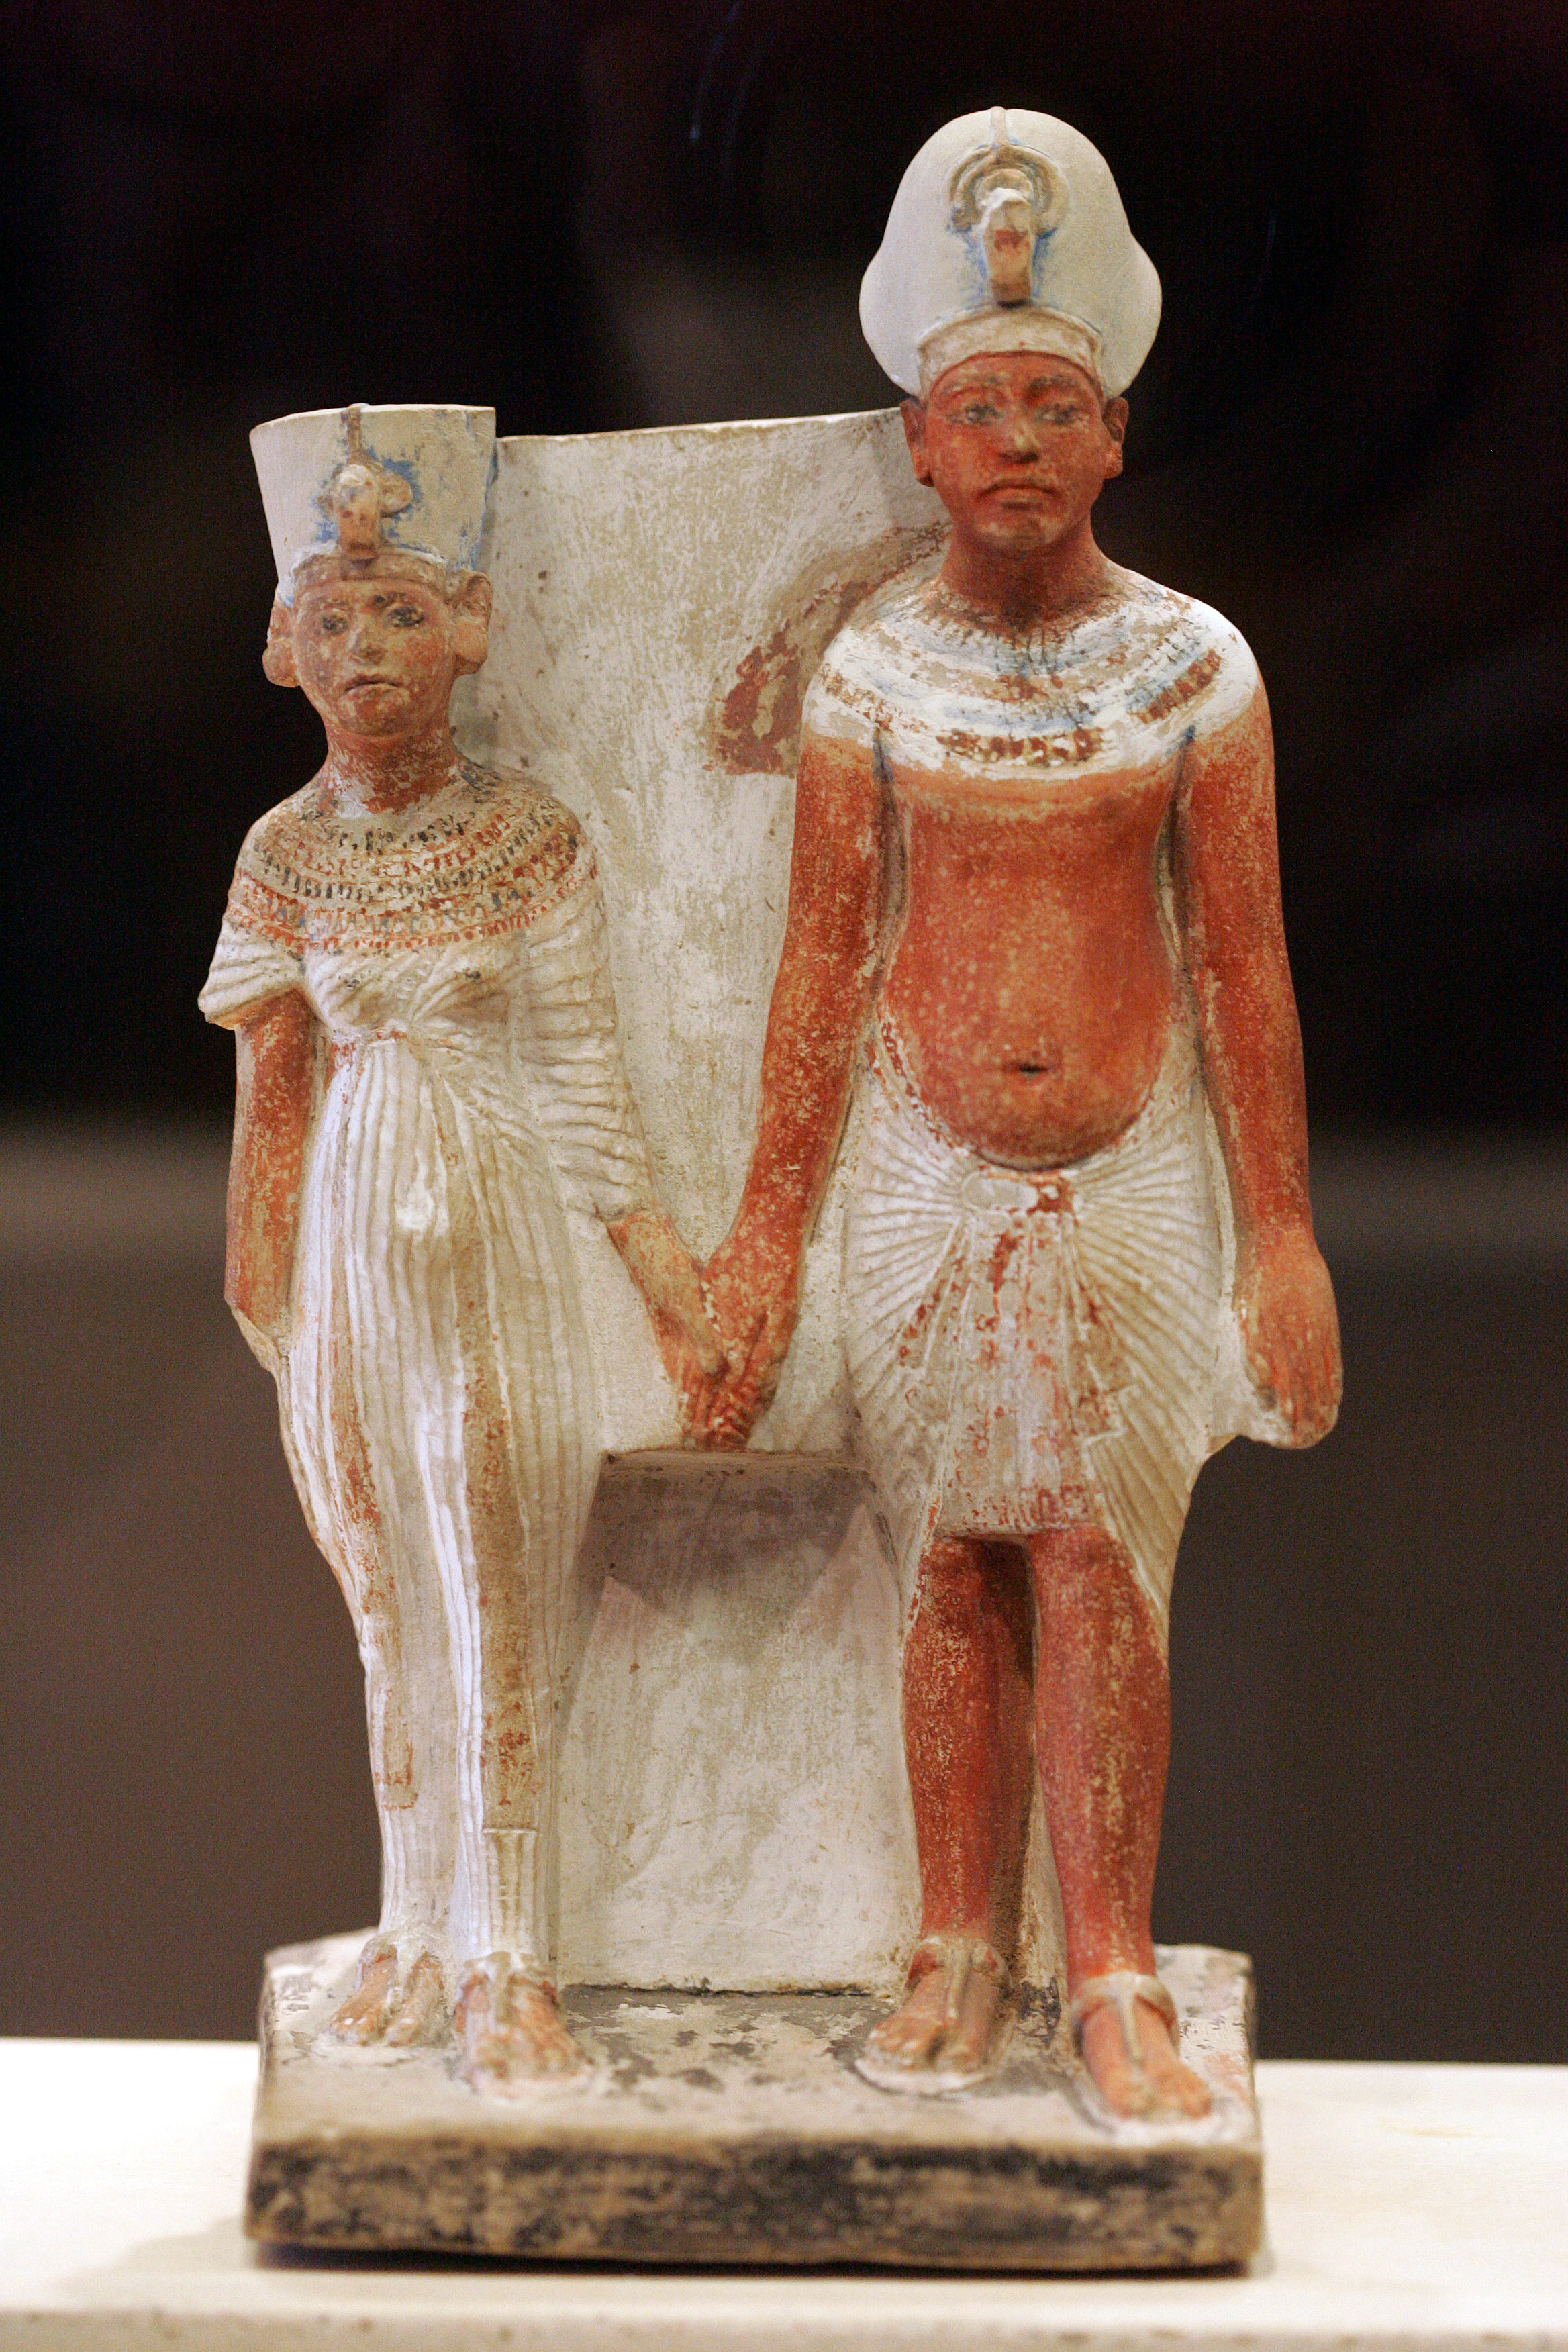 Painted limestone figurine of Akhenaten and Nefertiti, circa 1345 BC. In the collection of Louvre Museum, Paris, France. Photo taken on October 20, 2007.